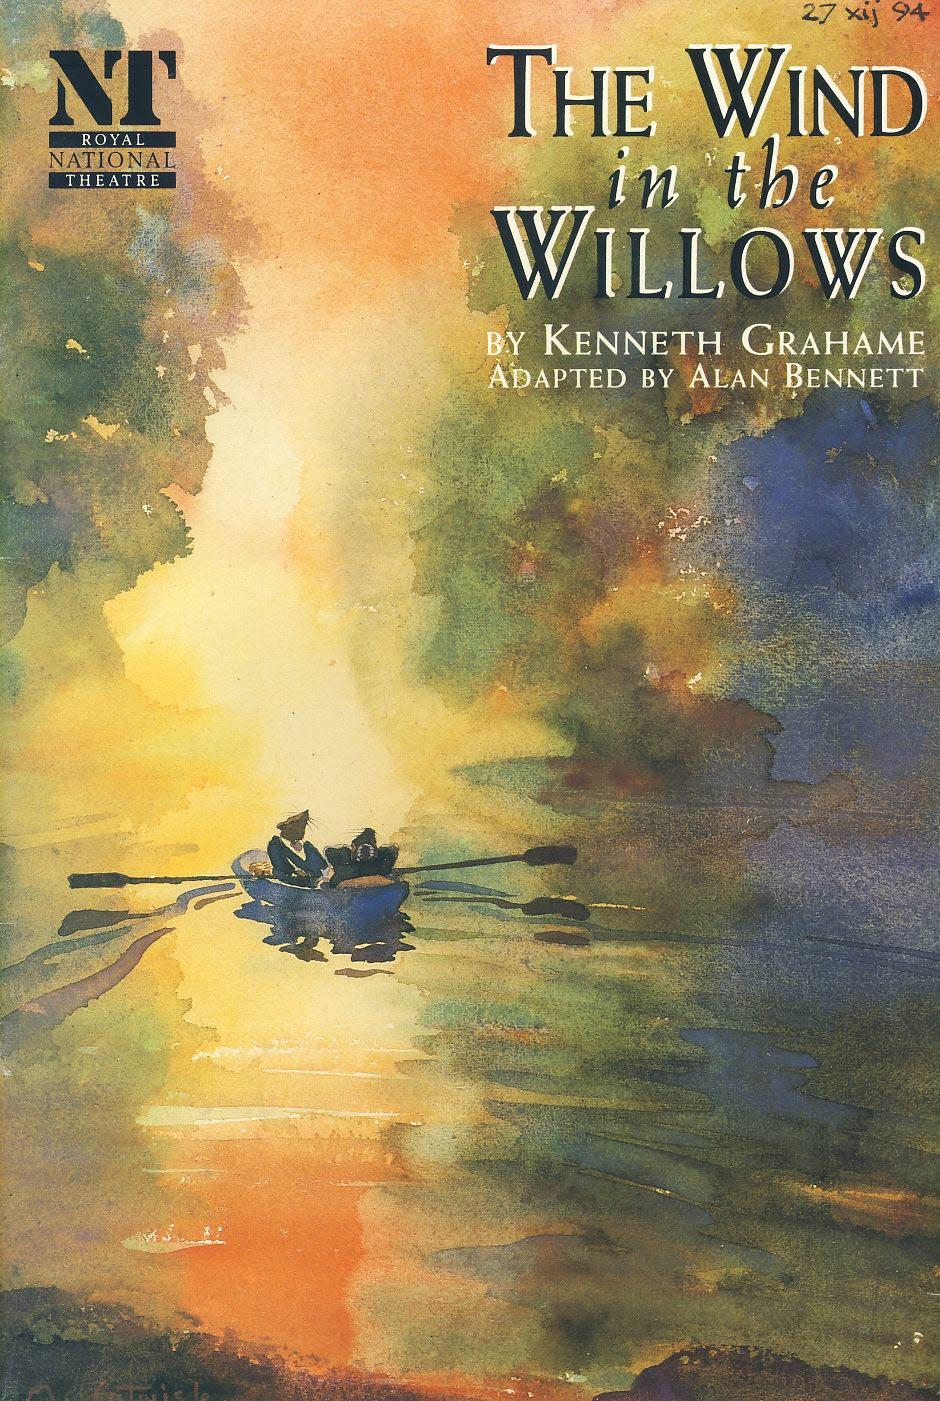 The Wind in the Willows 1994 Olivier Theatre Royal National Programme refb100867 Very Good Condition. Measure approx 17.5cm x 25cm Date written on cover.